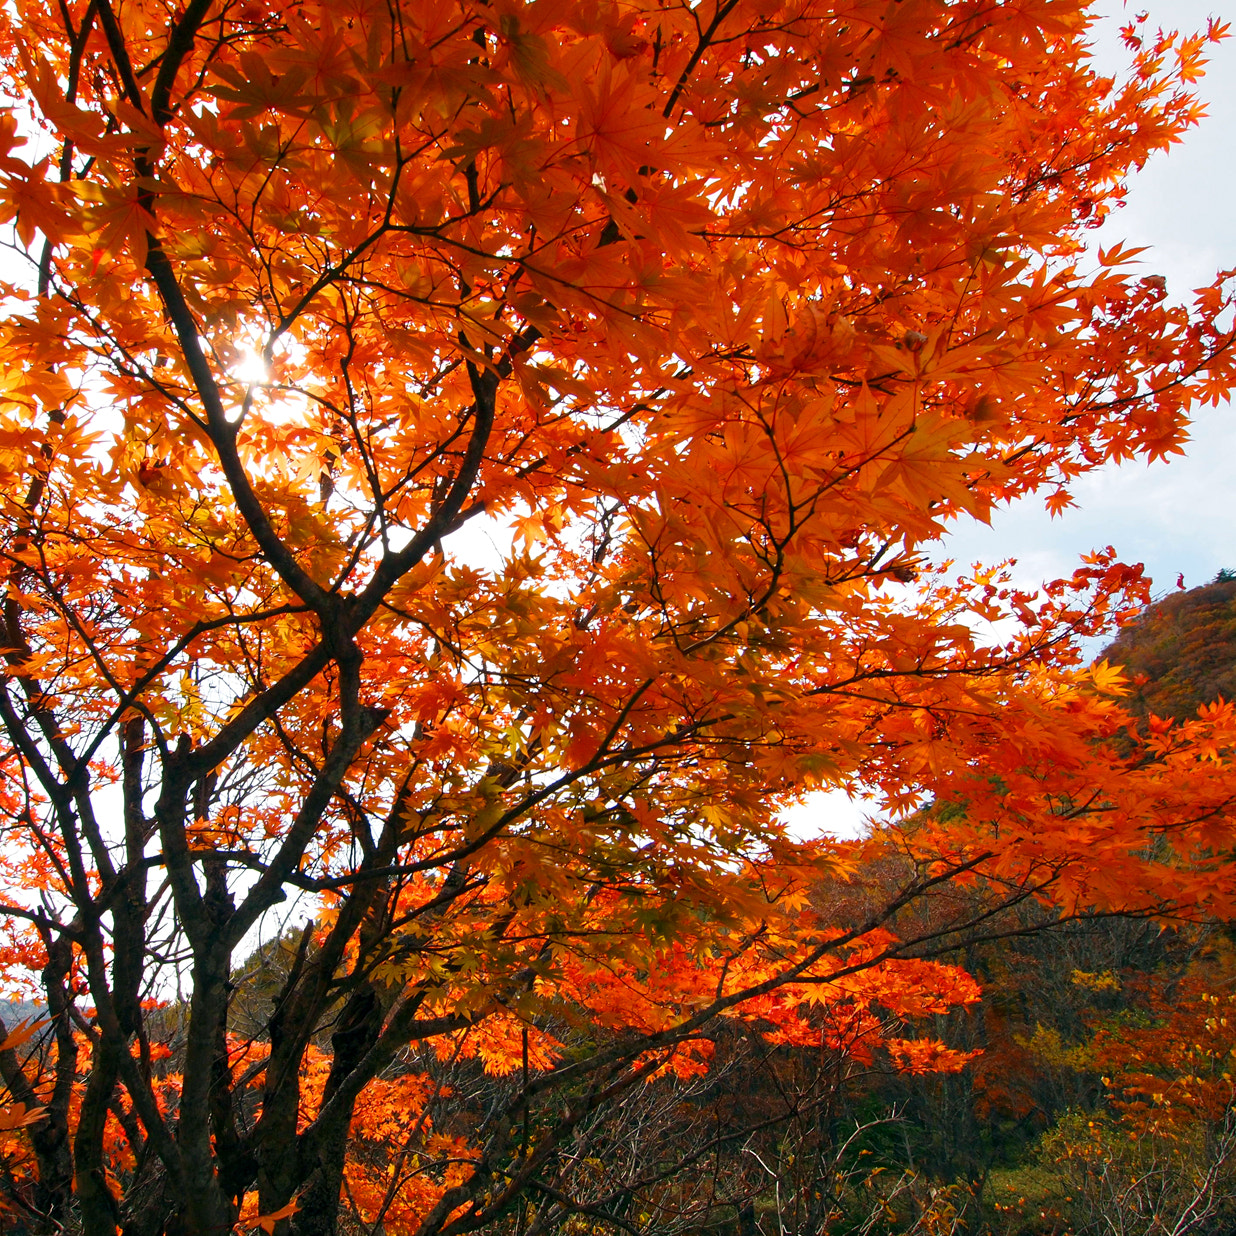 Photograph Autumn Color in Japan by Athi Aachawaradt on 500px